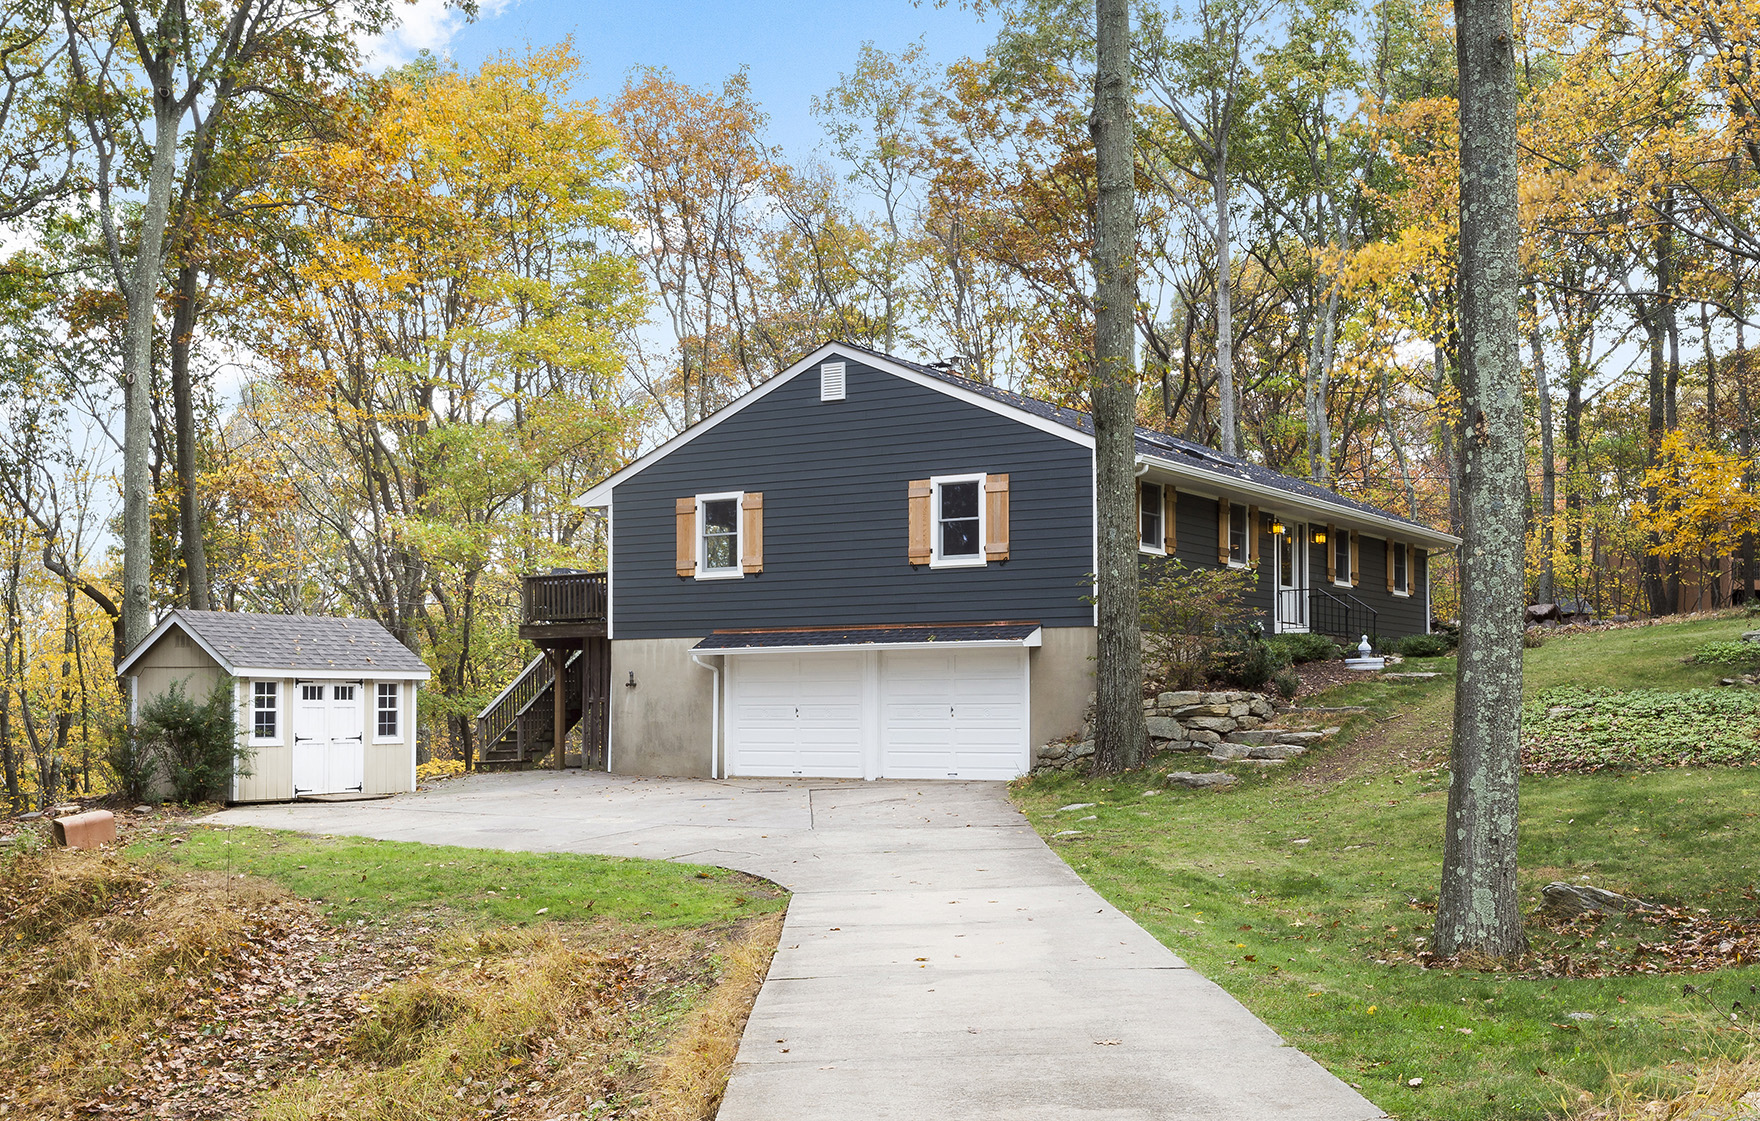 01 5 Lenore Road Tewksbury Township — Front View